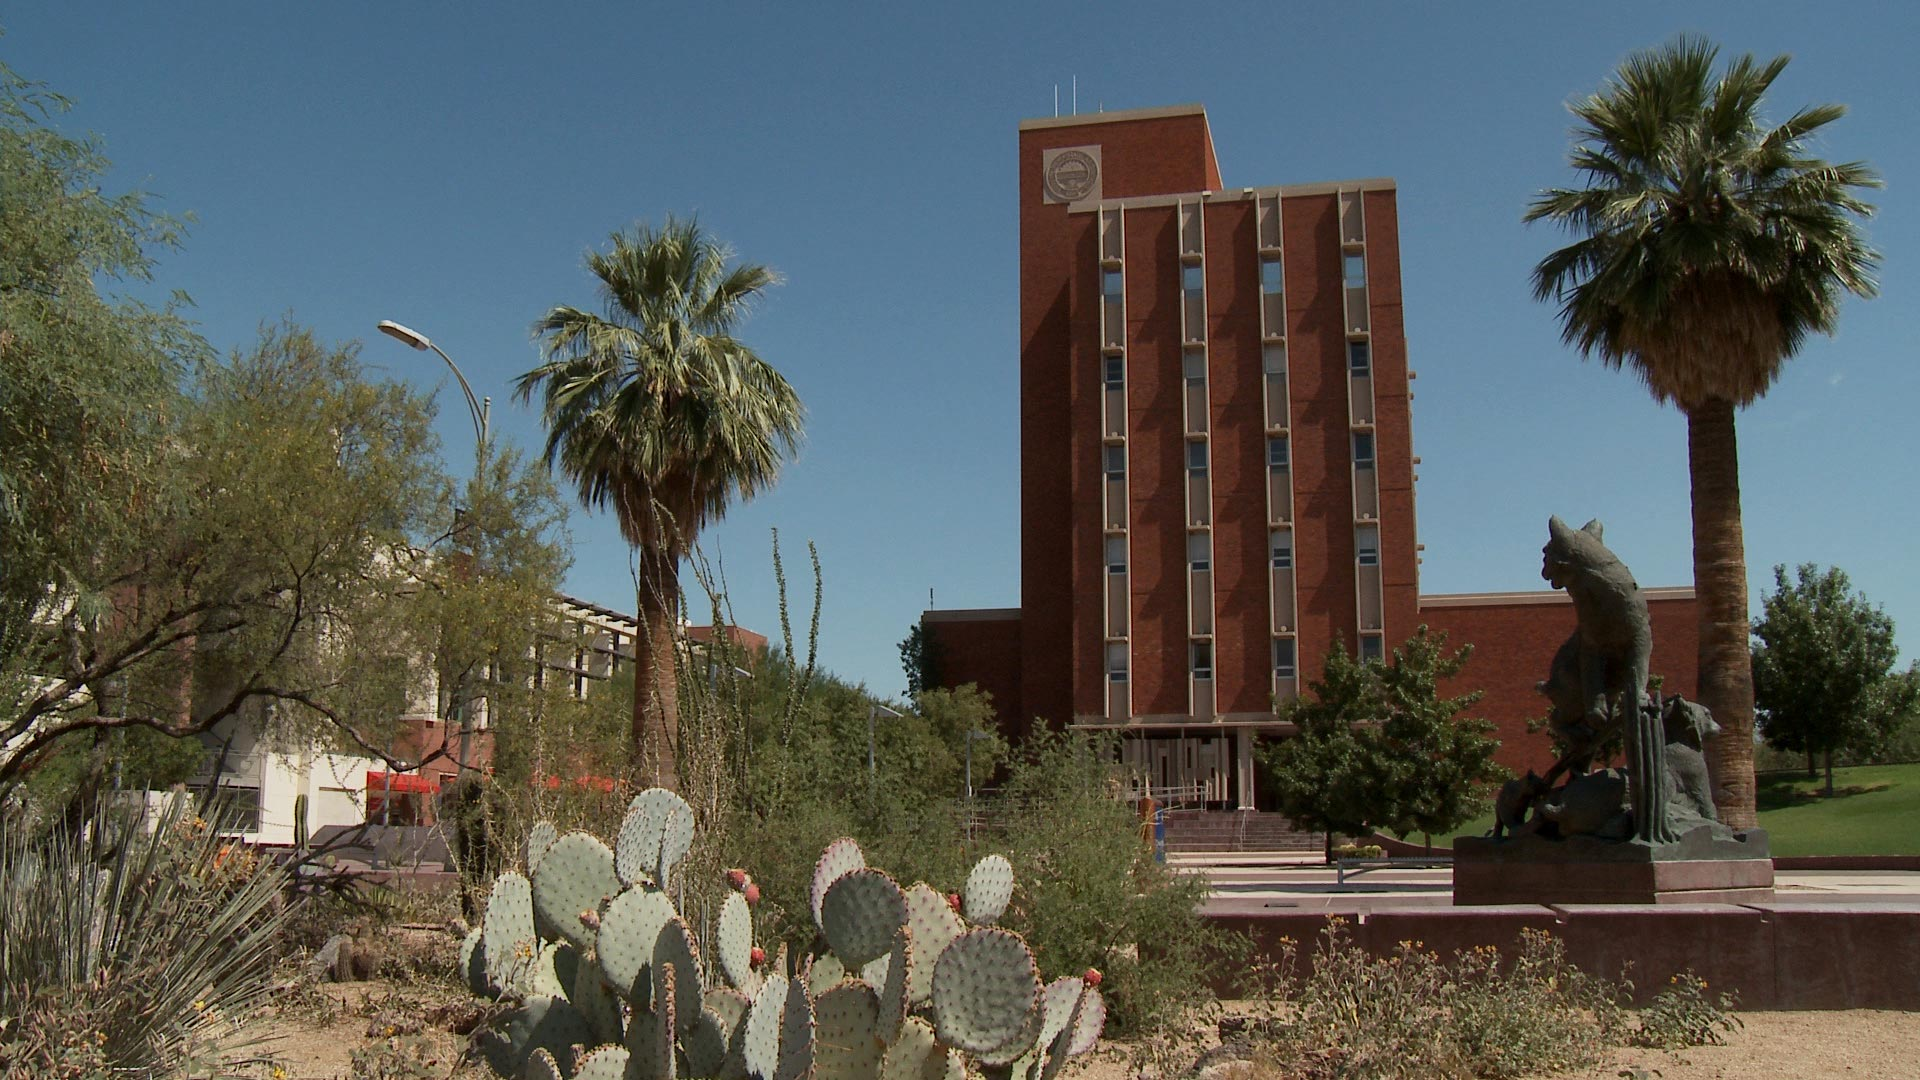 A file image of the University of Arizona Administration building.